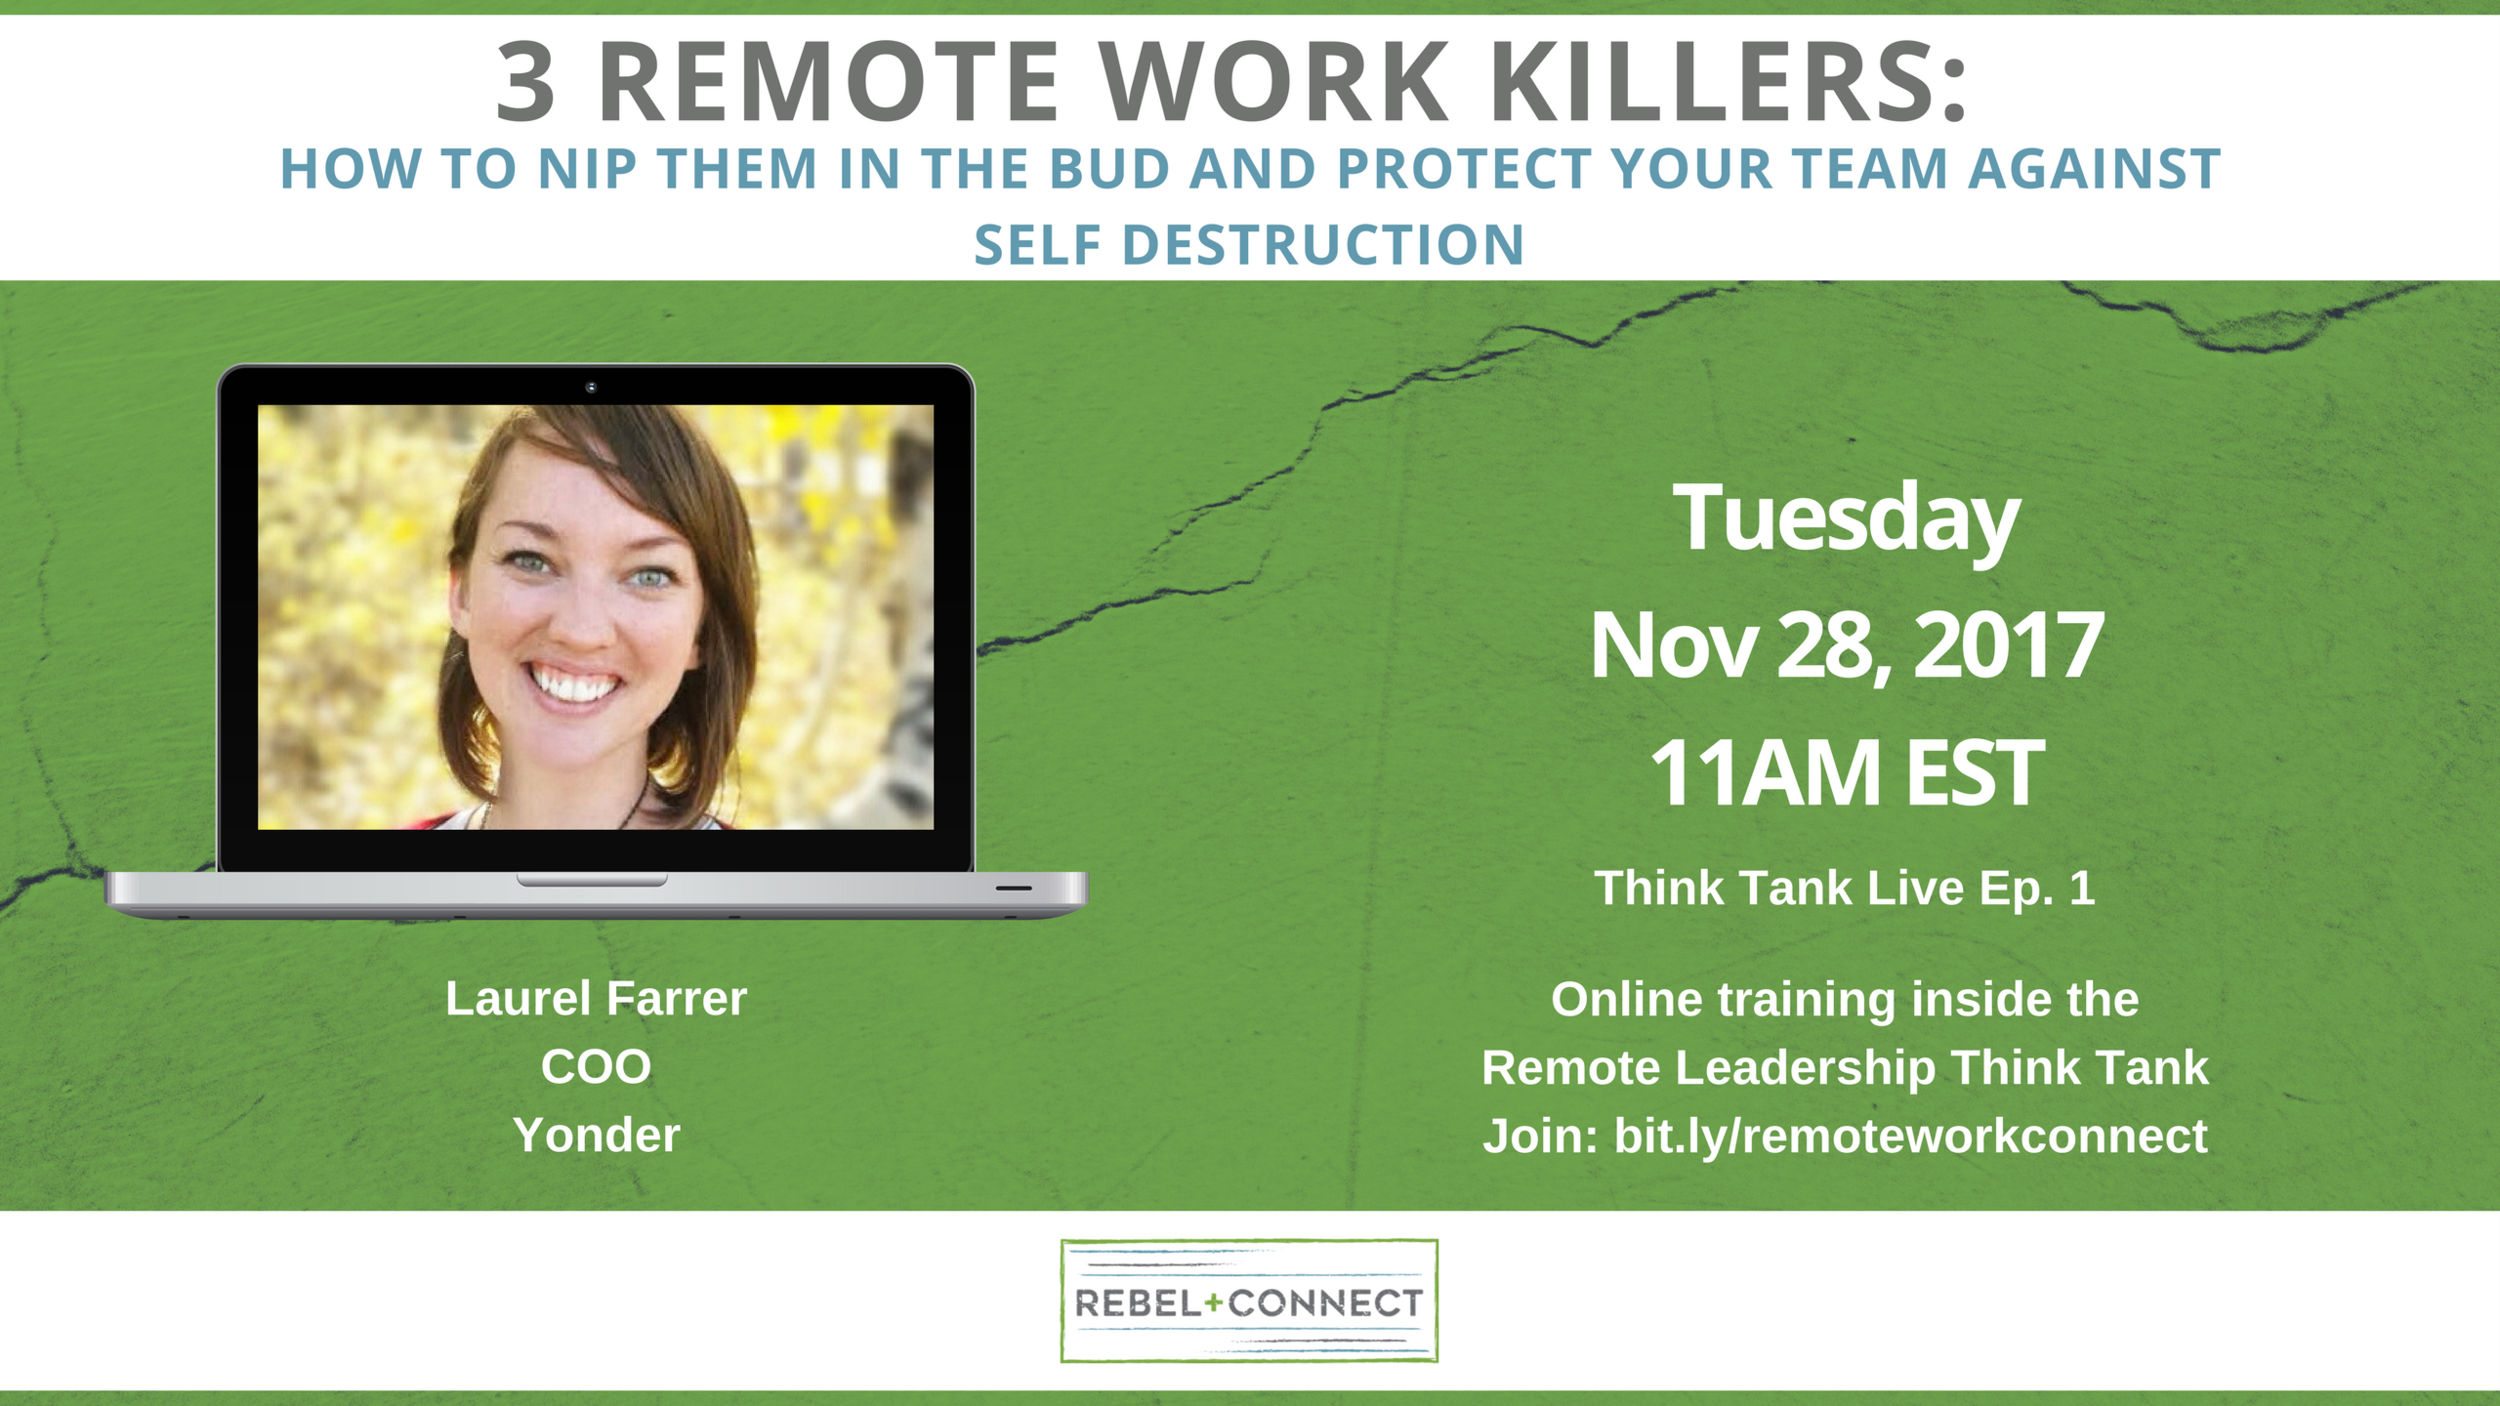 3 Remote Work Killers with Laruel Farrer, COO of Yonder.io